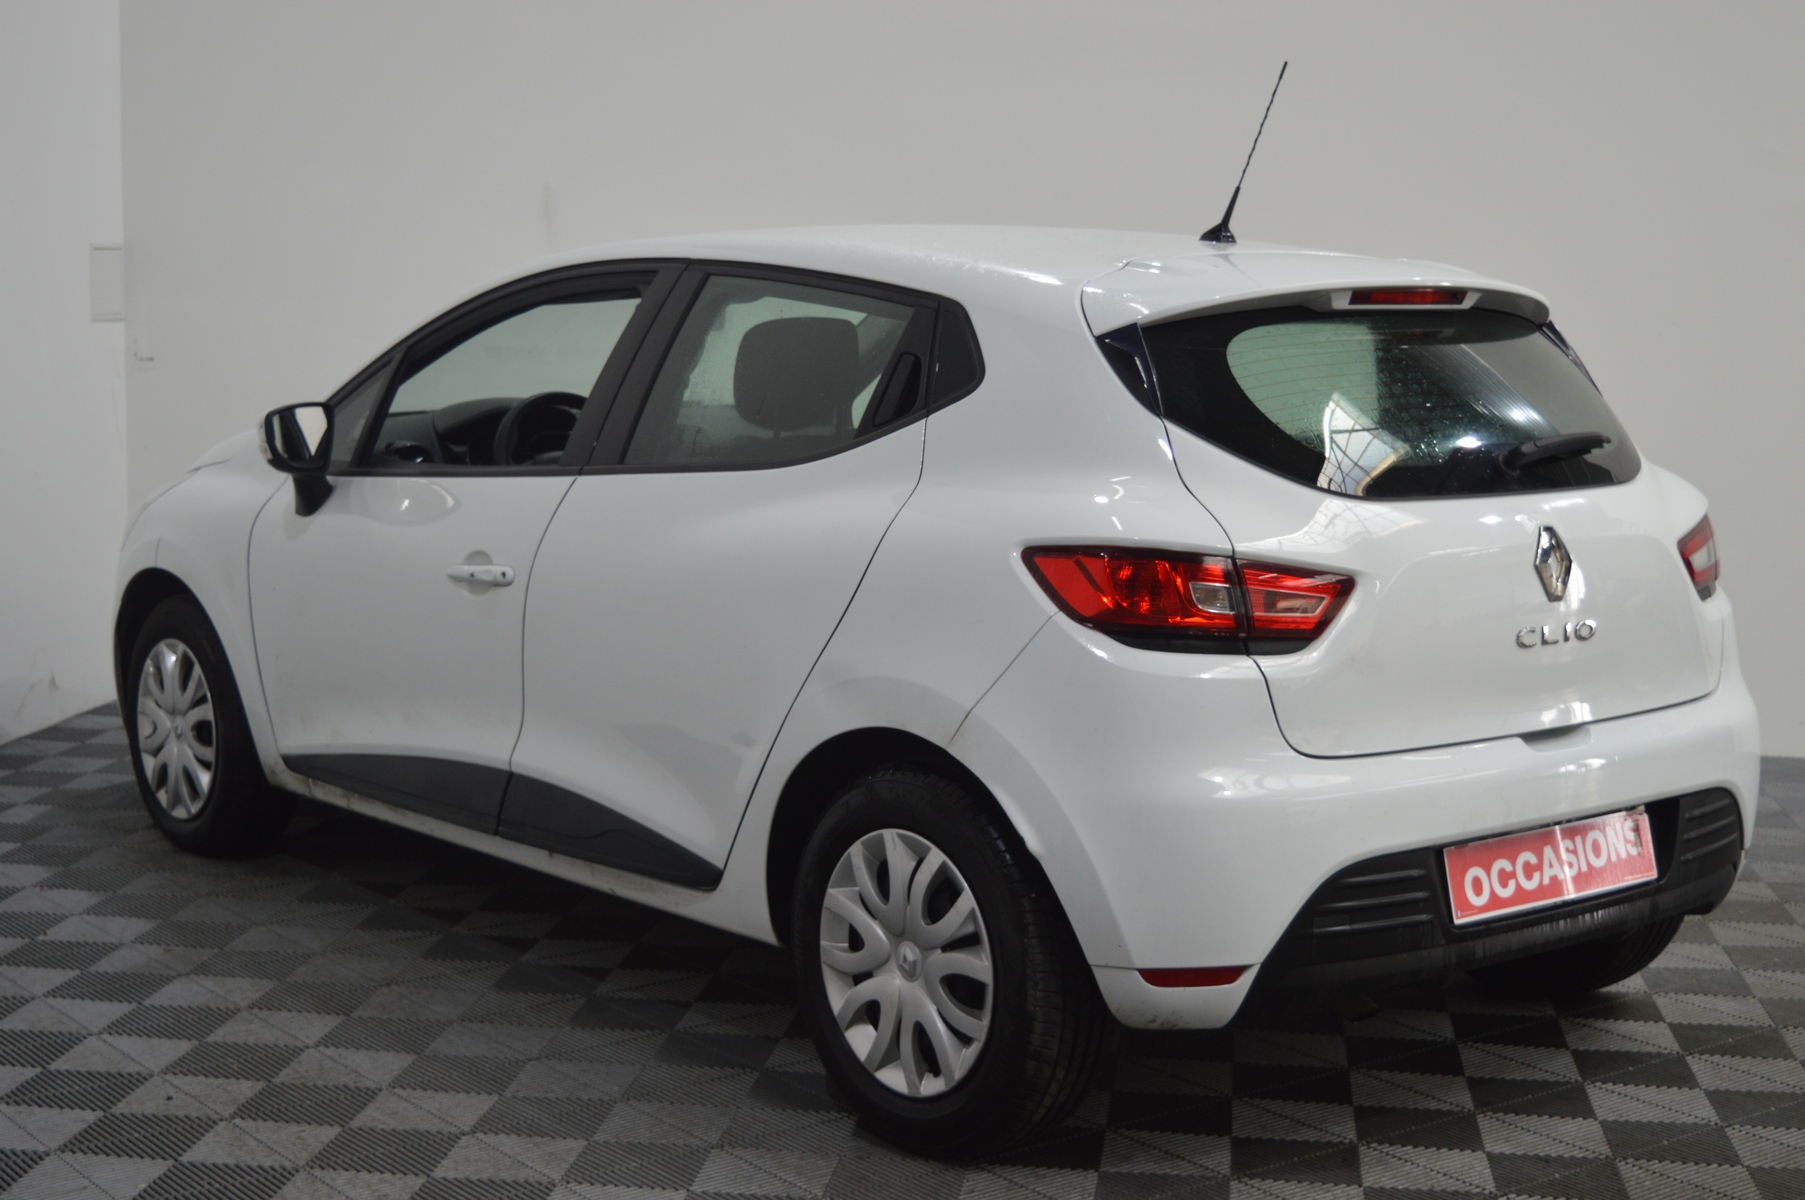 RENAULT CLIO IV SOCIETE 2018 à 7400 € - Photo n°4